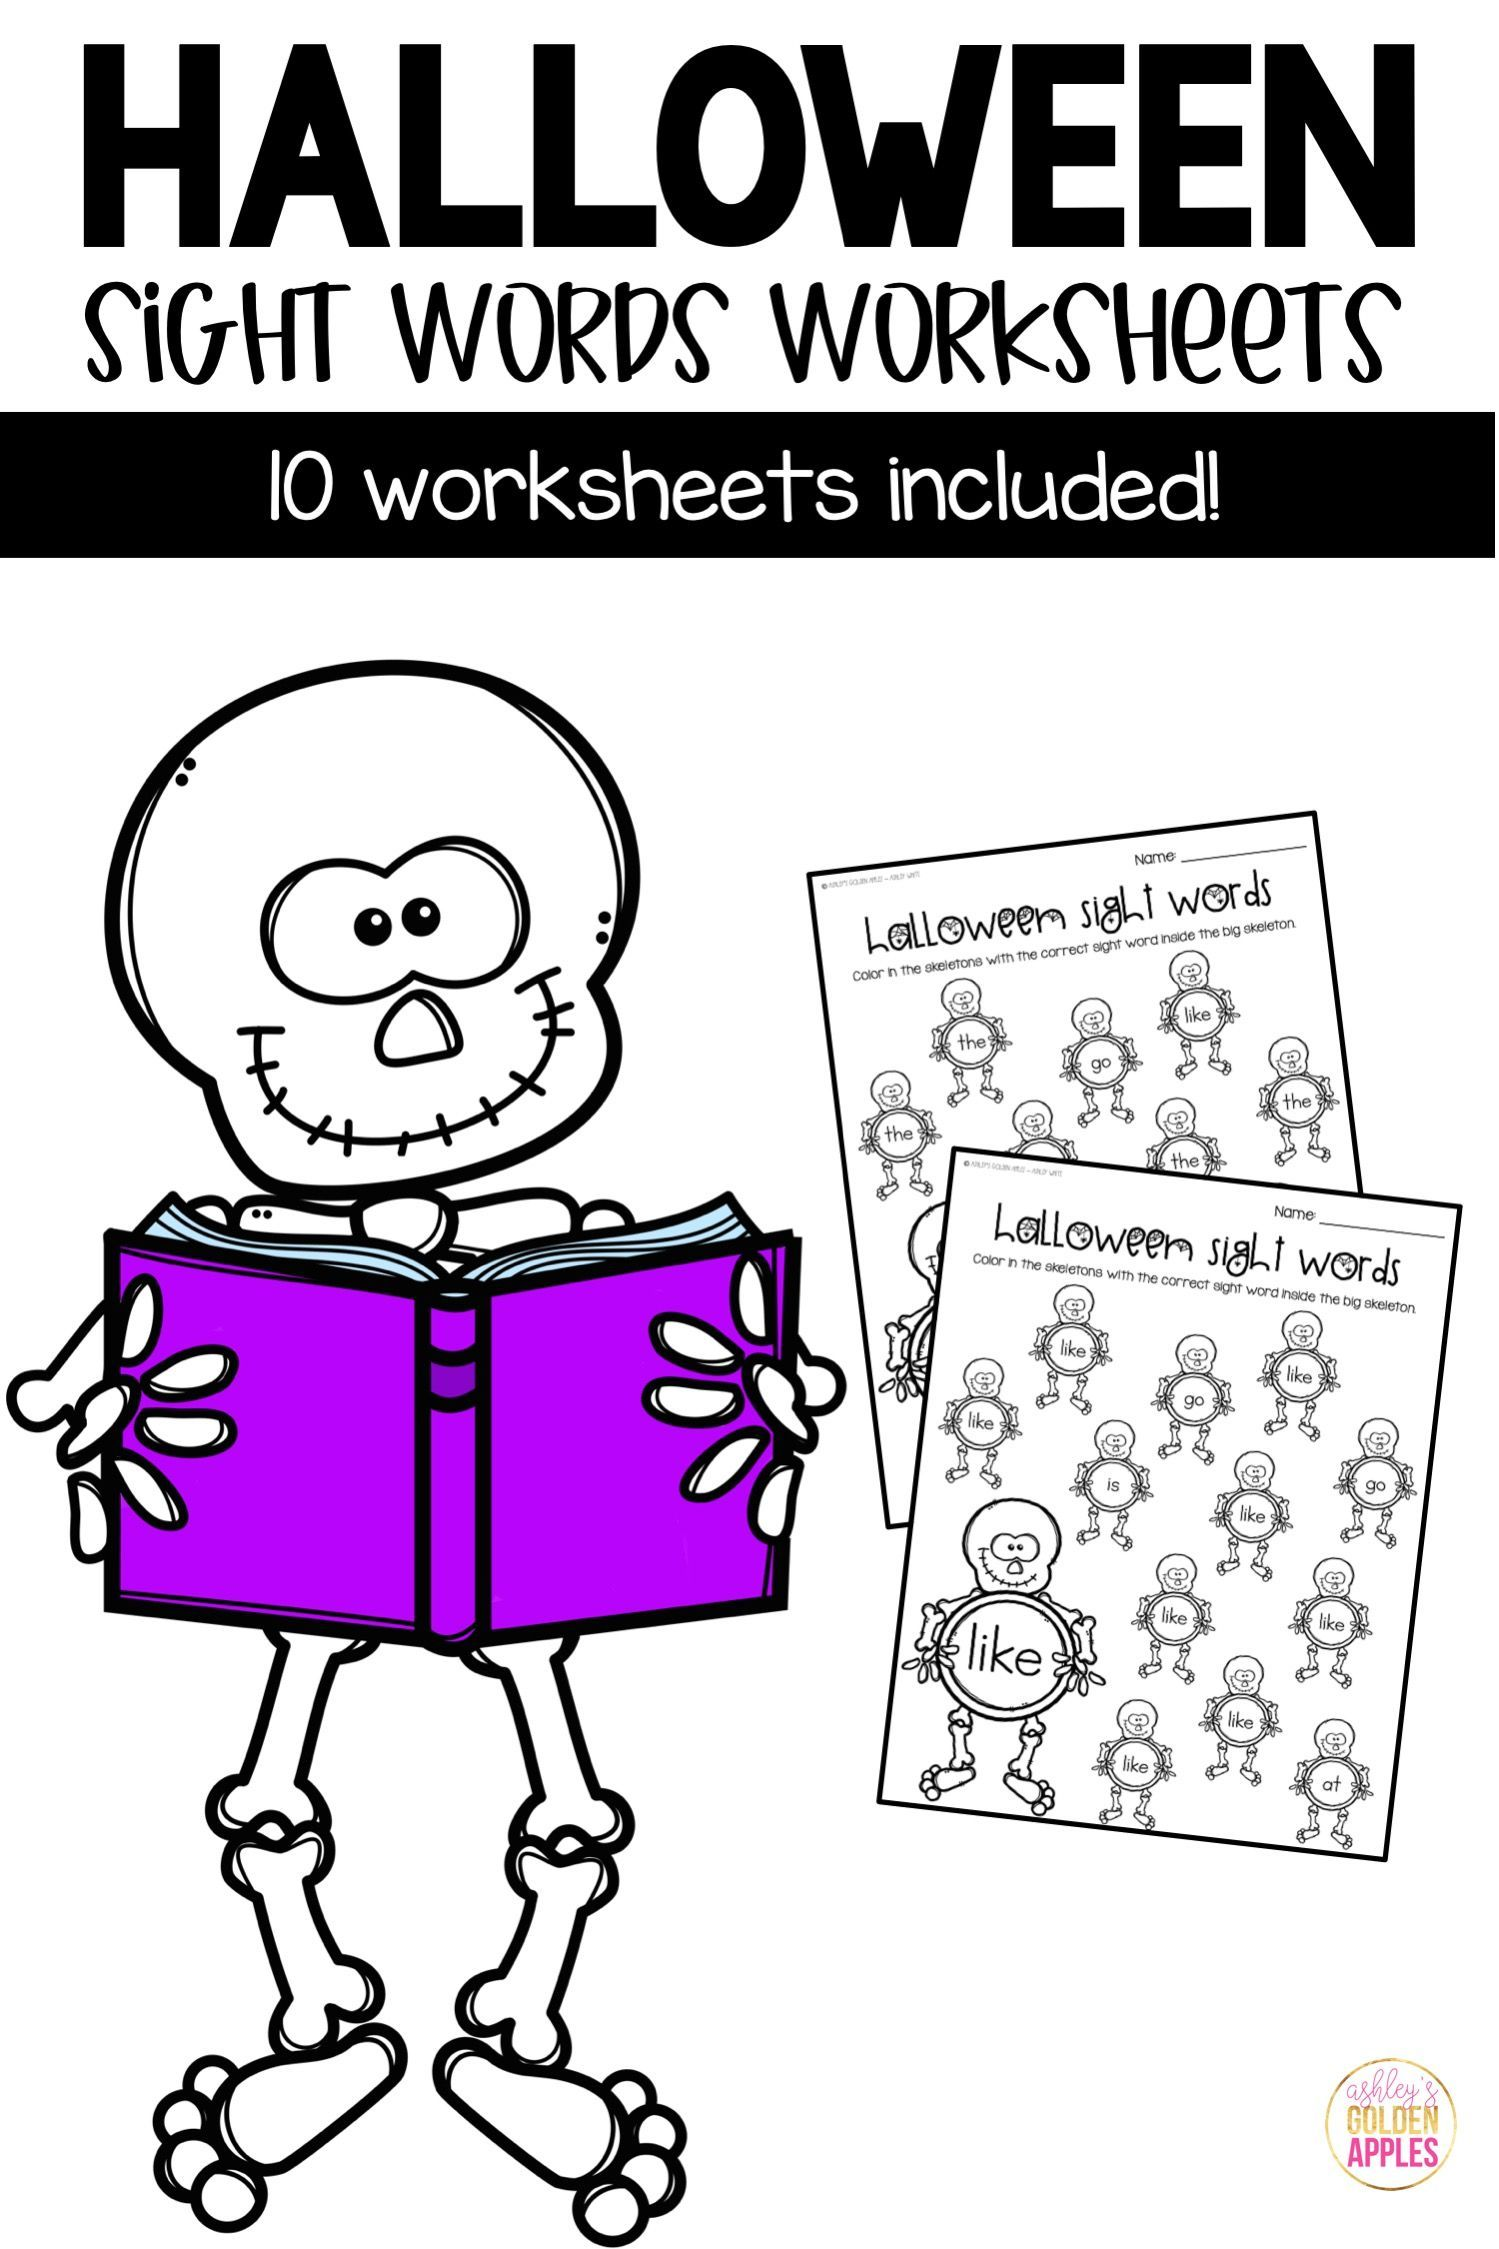 Sight Words Worksheets Halloween